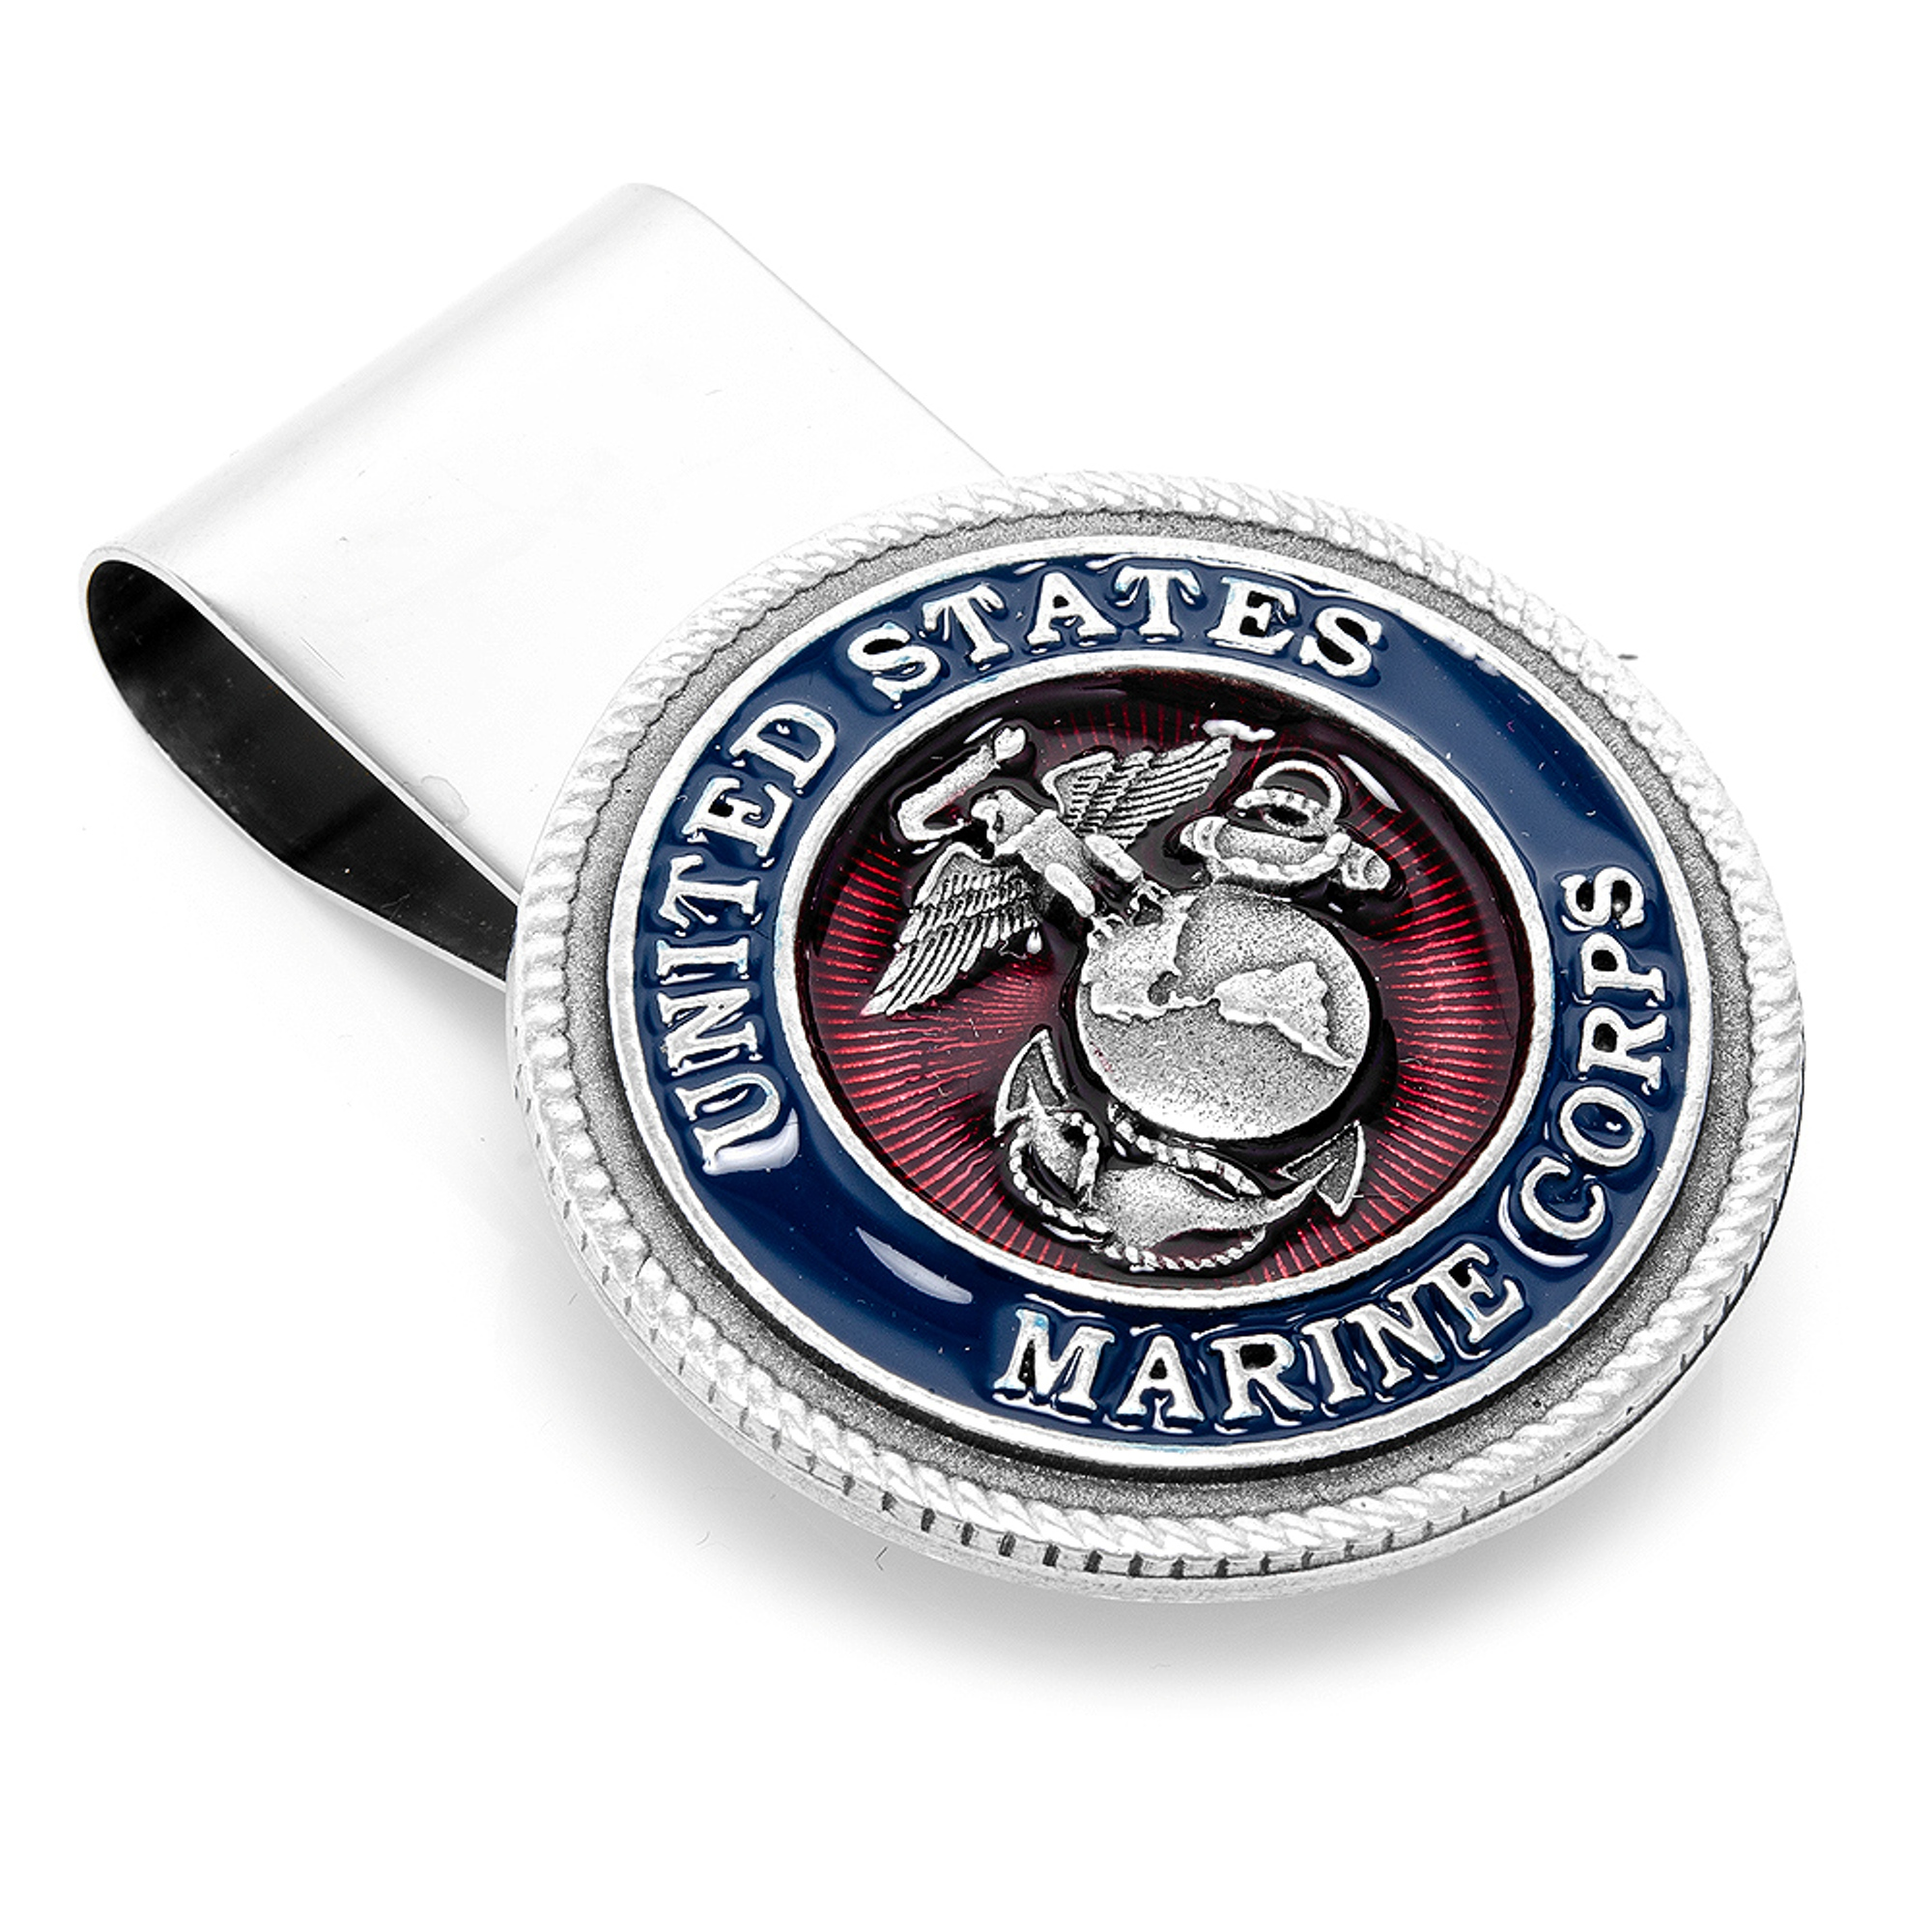 Men's Cufflinks Inc Enamel Marine Corp Money Clip